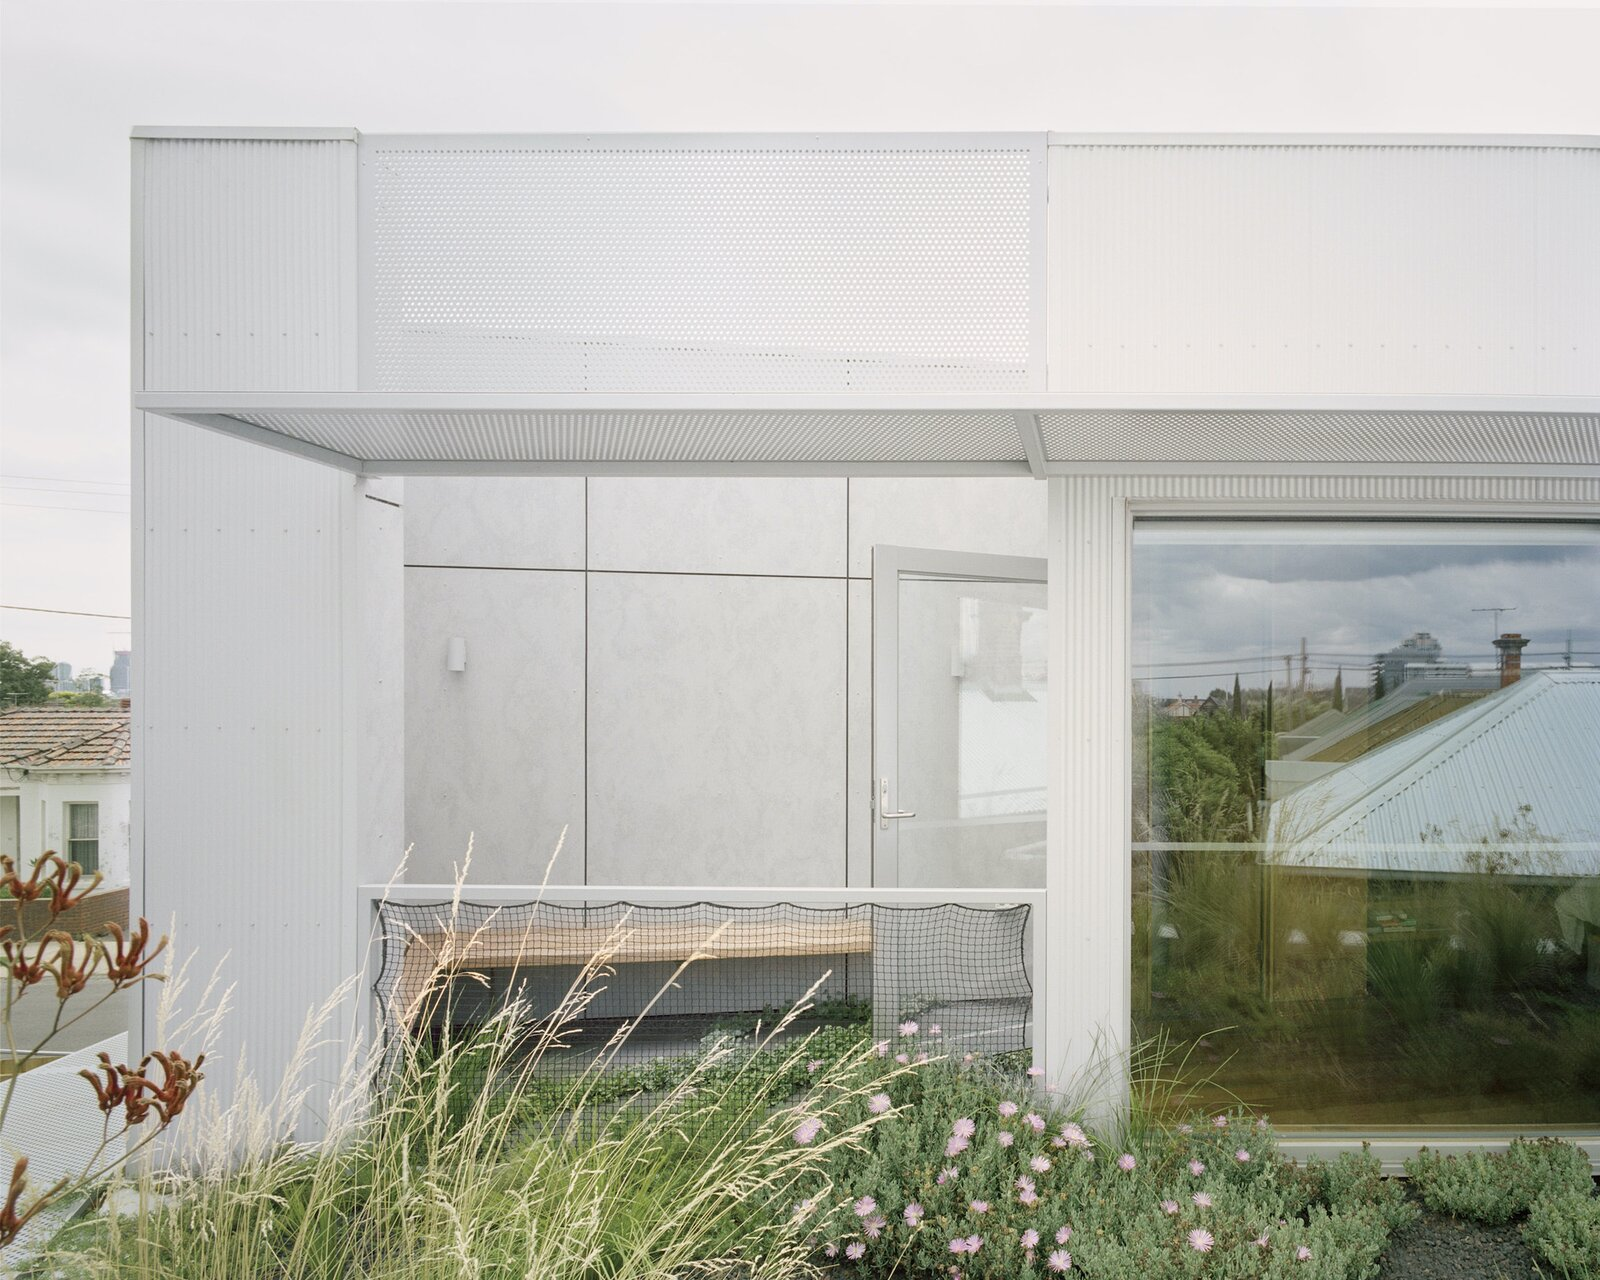 Green roof of Terrace House 1 by Dreamer